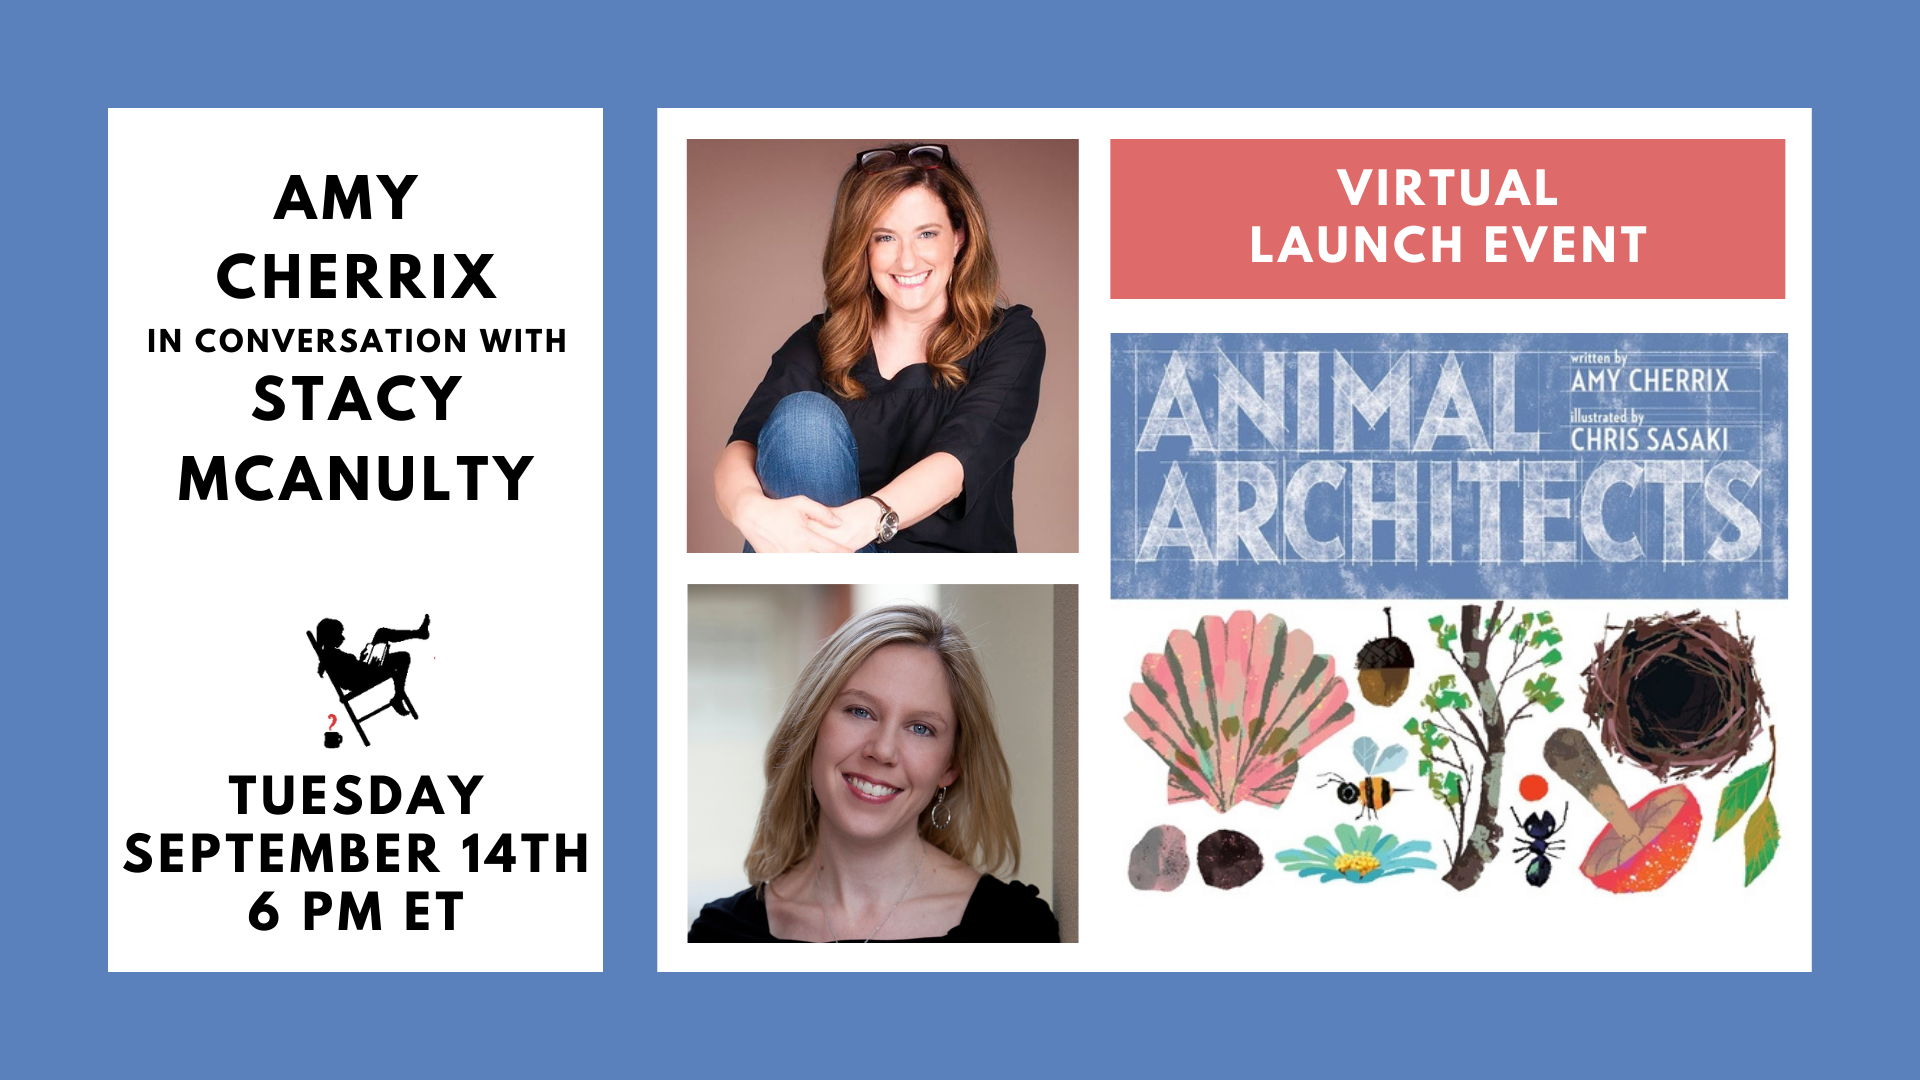 Image for Virtual Launch Event with Amy Cherrix in conversation with Stacy McAnulty. Tuesday, September 14, 6 PM ET. Image shows photos of authors and the cover of the book ANIMAL ARCHITECTS